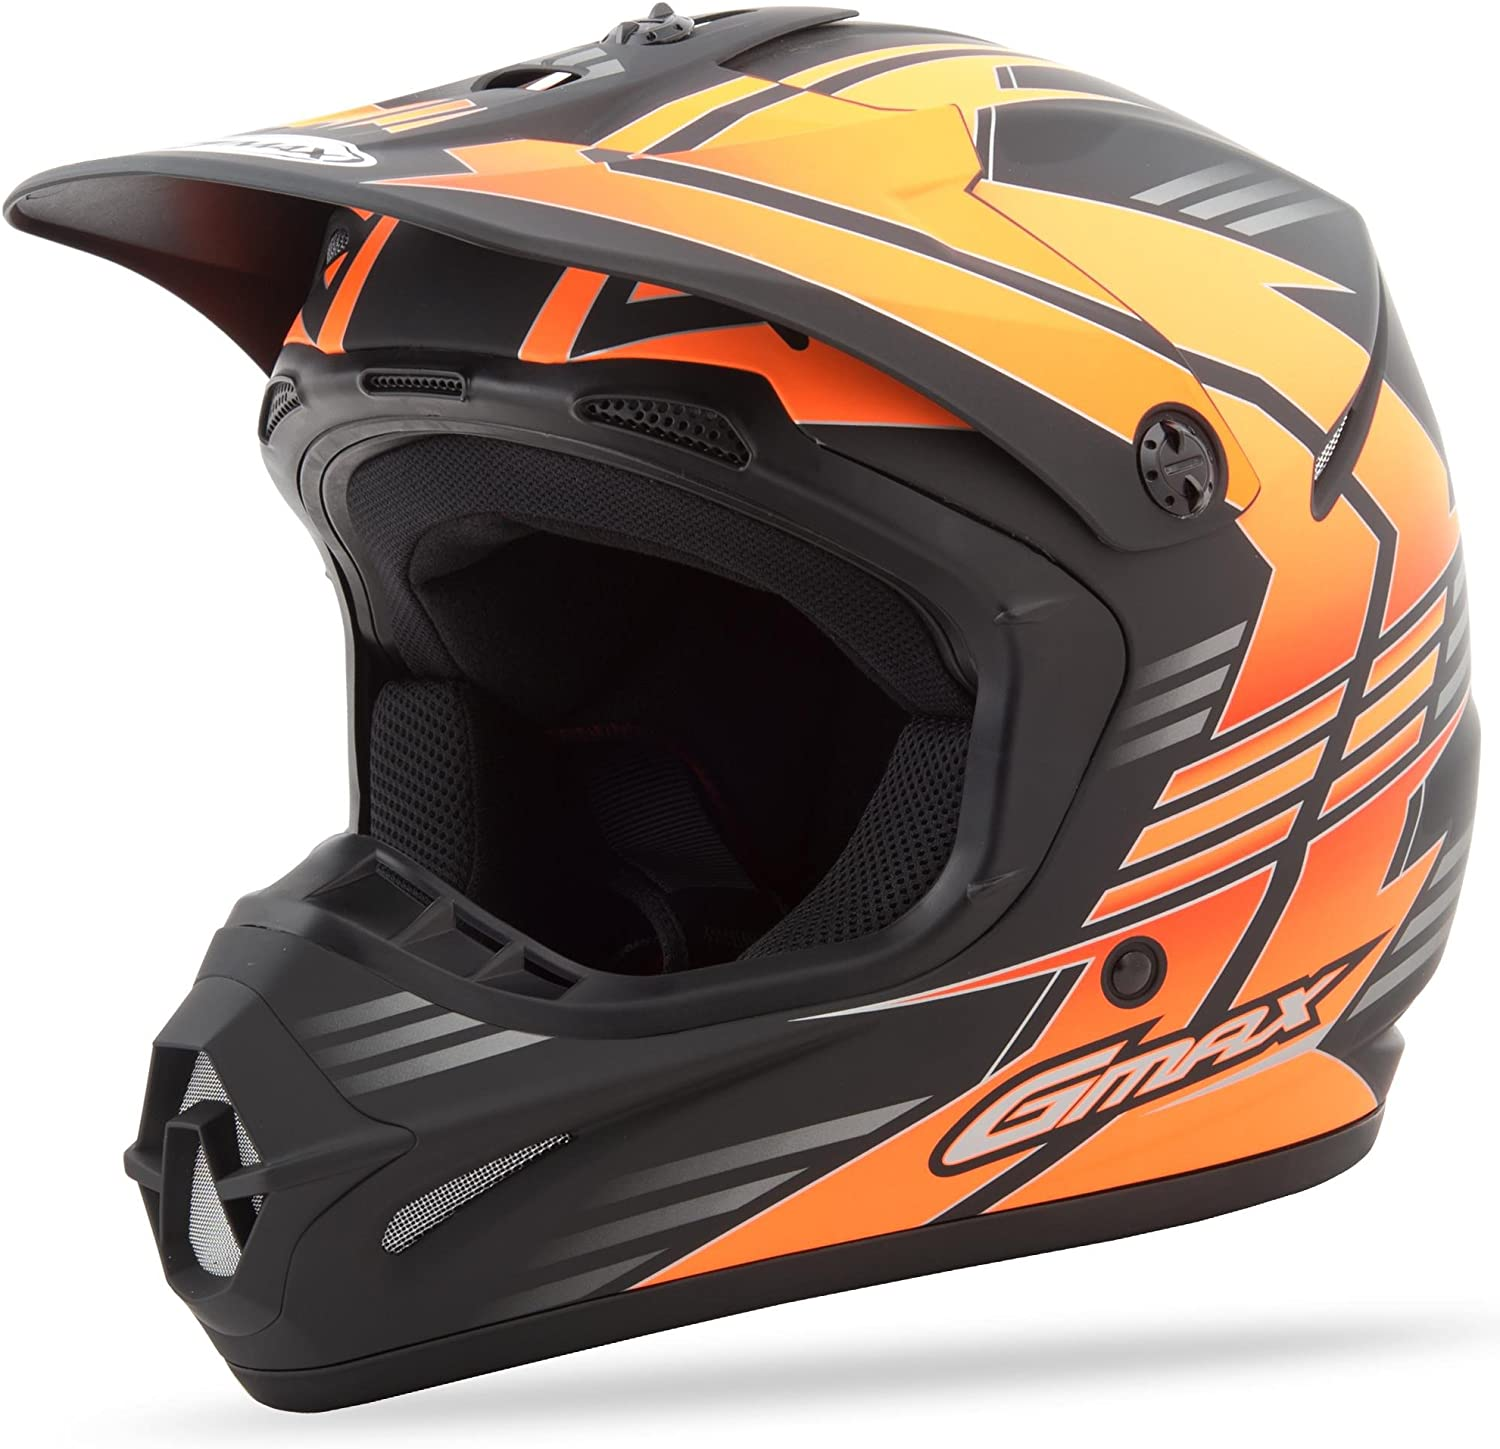 GMAX Unisex-Adult Full-face Style G3466696 TC-26F Gm46.2X Race Helmet Black//Hi-Vis Orange l Large G3466696TC-26F